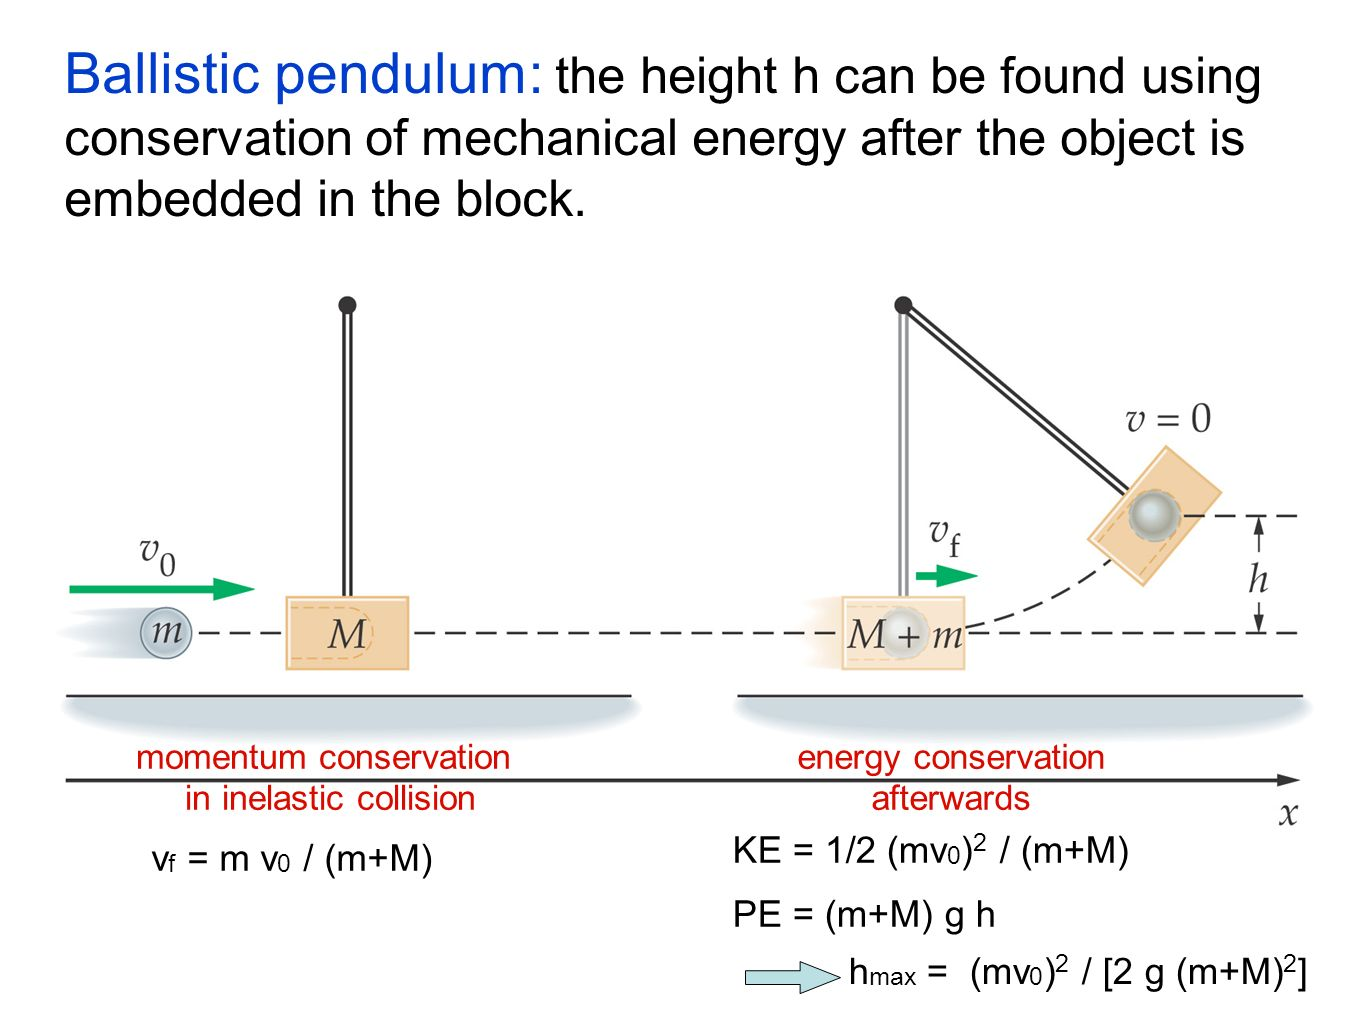 ballistic pendulum Ballistic pendulum the ballistic pendulum is a classic example of a dissipative collision in which conservation of momentum can be used for analysis, but conservation of energy during the collision cannot be invoked because the energy goes into inaccessible forms such as internal energy.